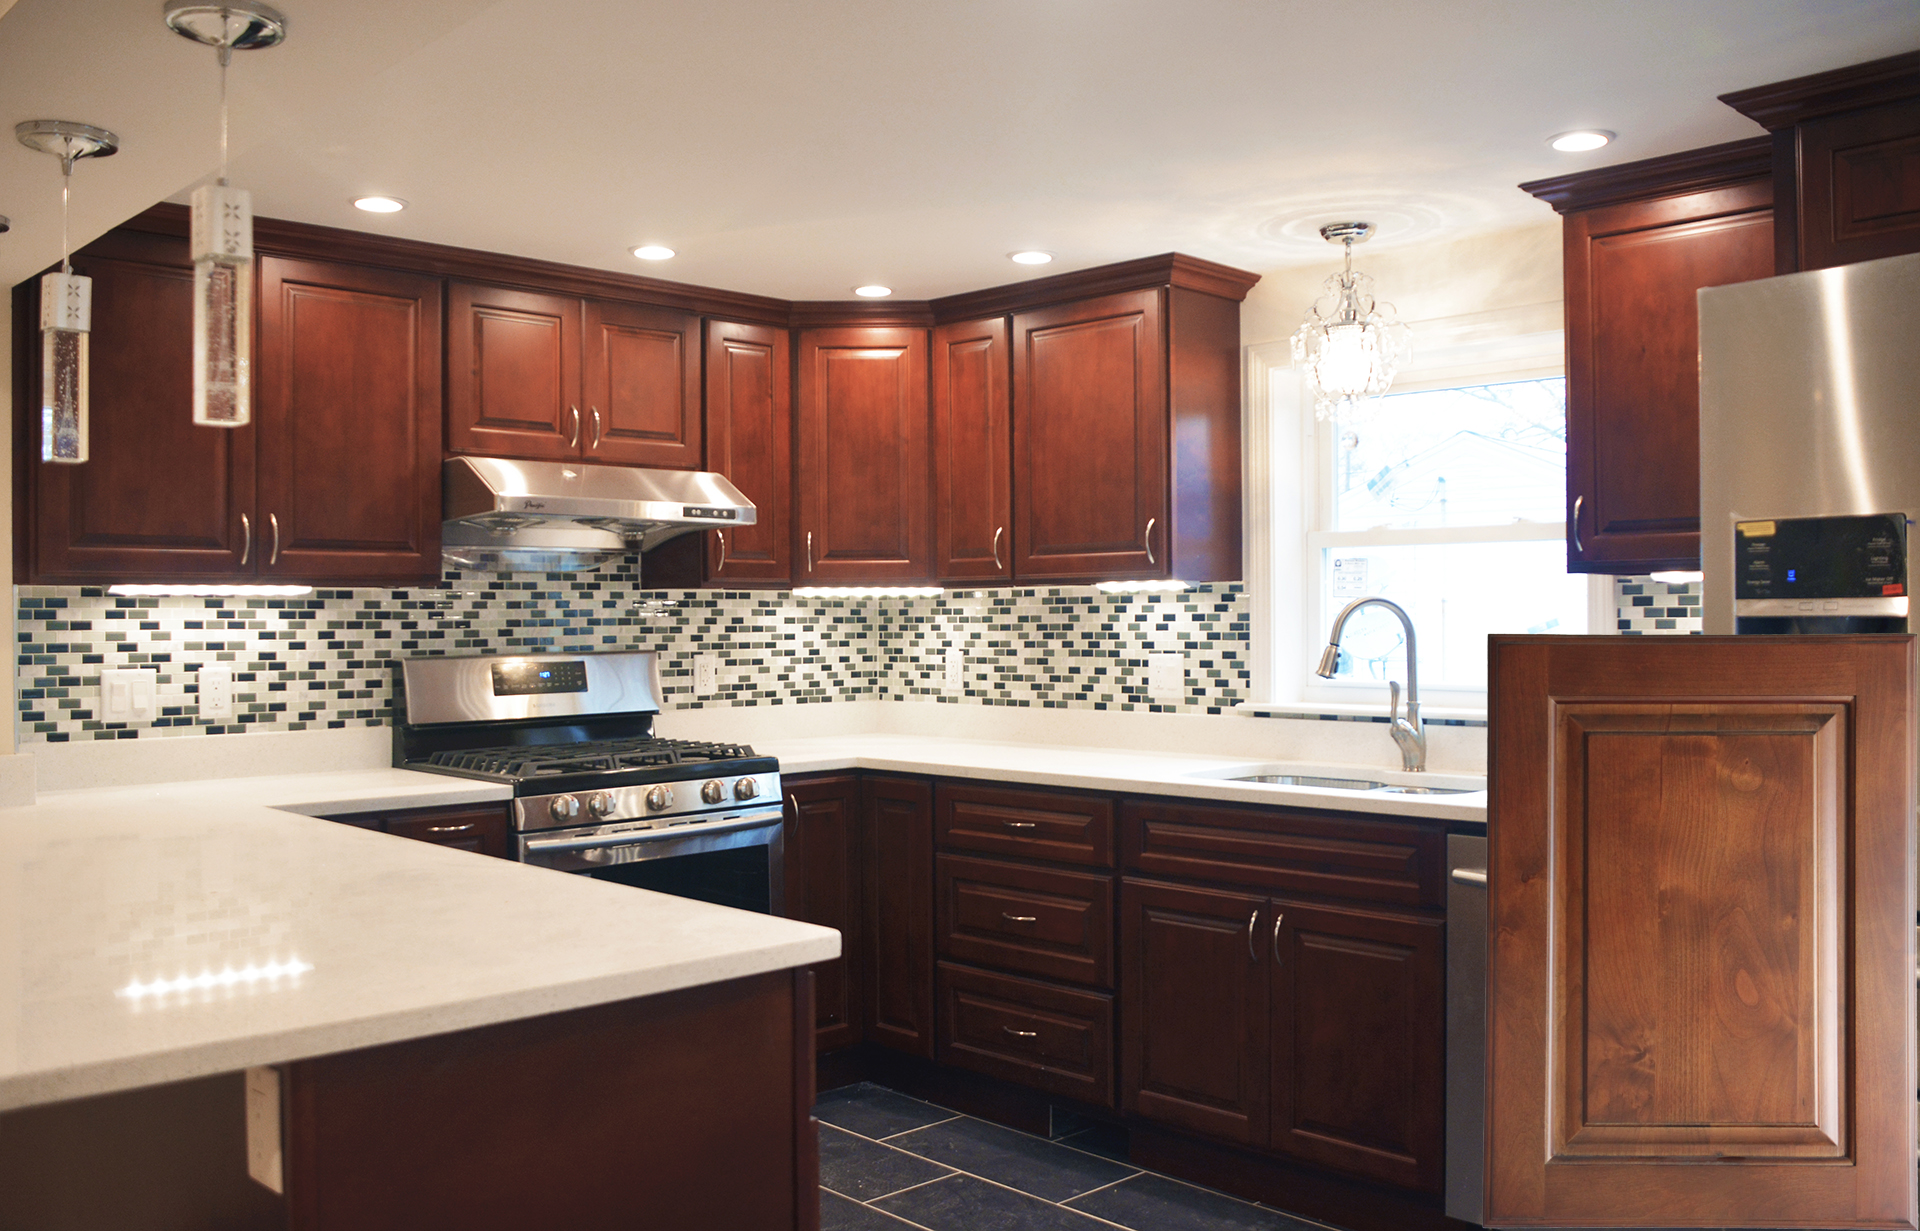 Our all-wood KOB Stock Cabinets | Quality kitchen cabinets ...